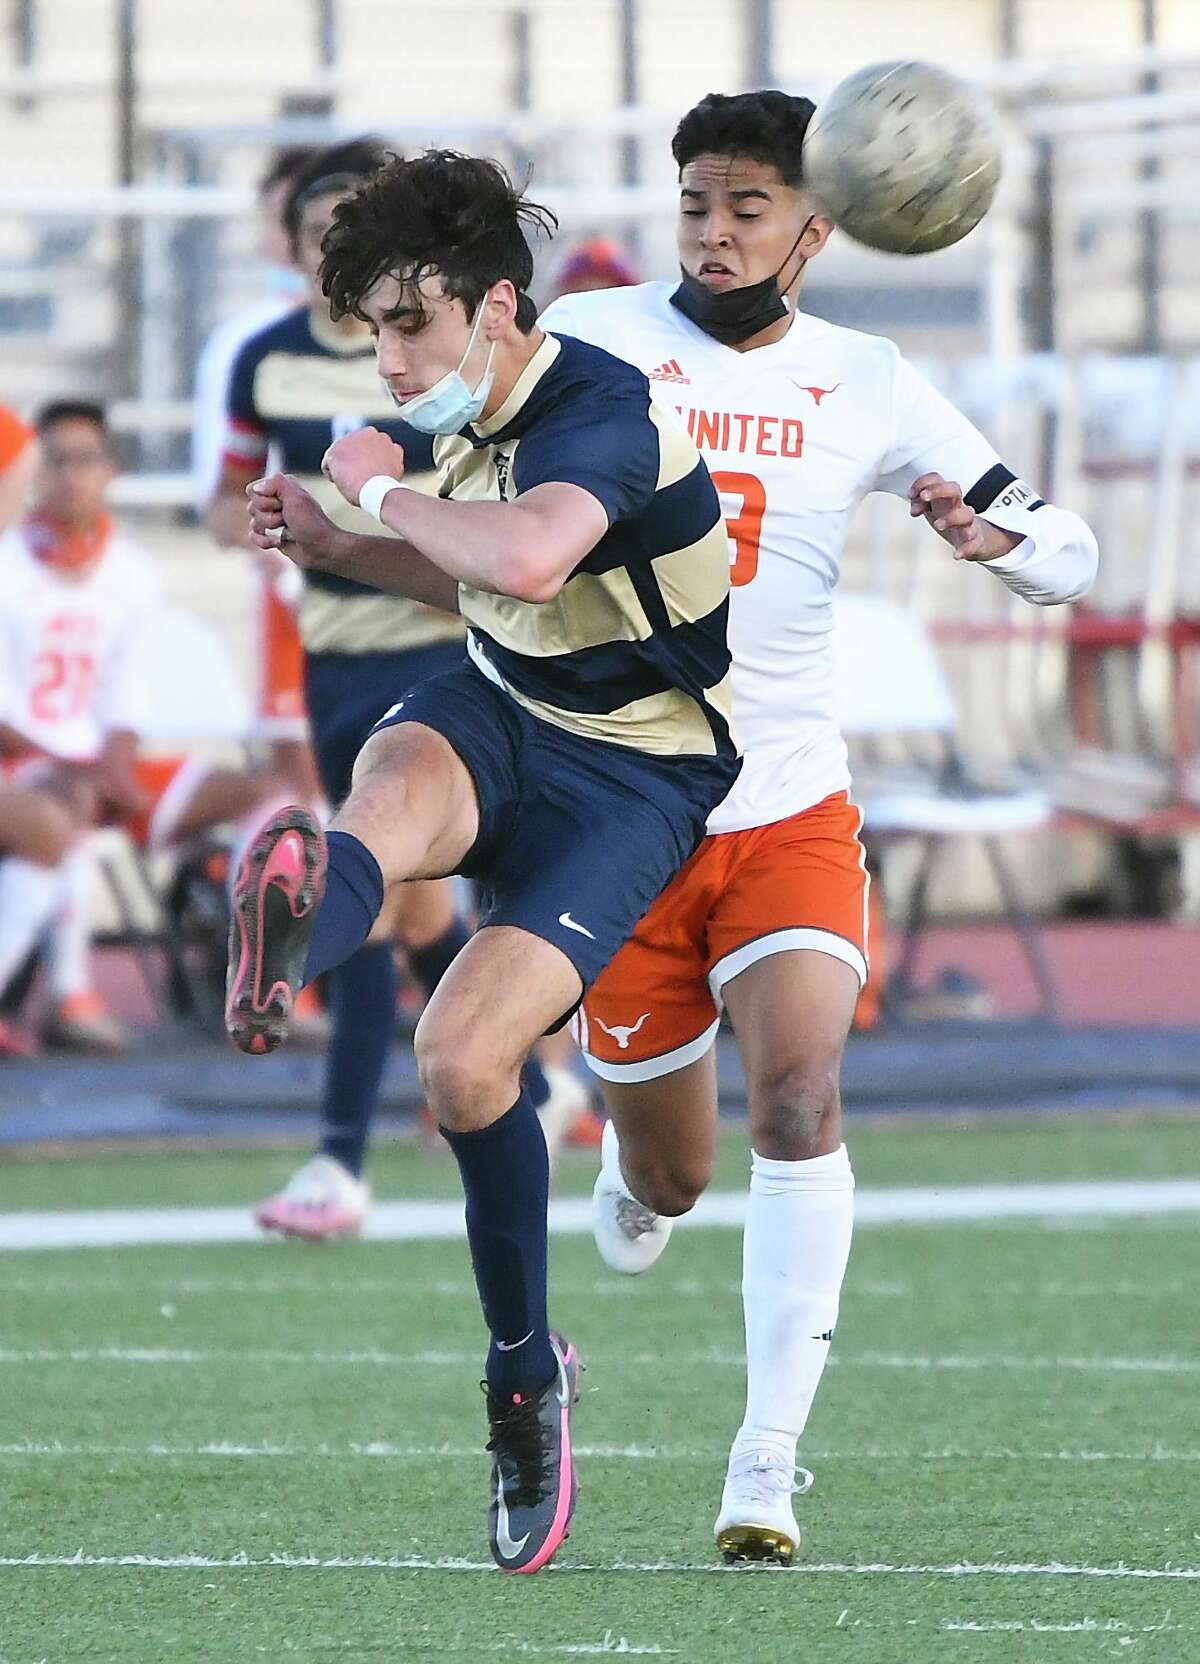 Roberto Ahumada and Alexander can win the district title with another win over United this weekend.